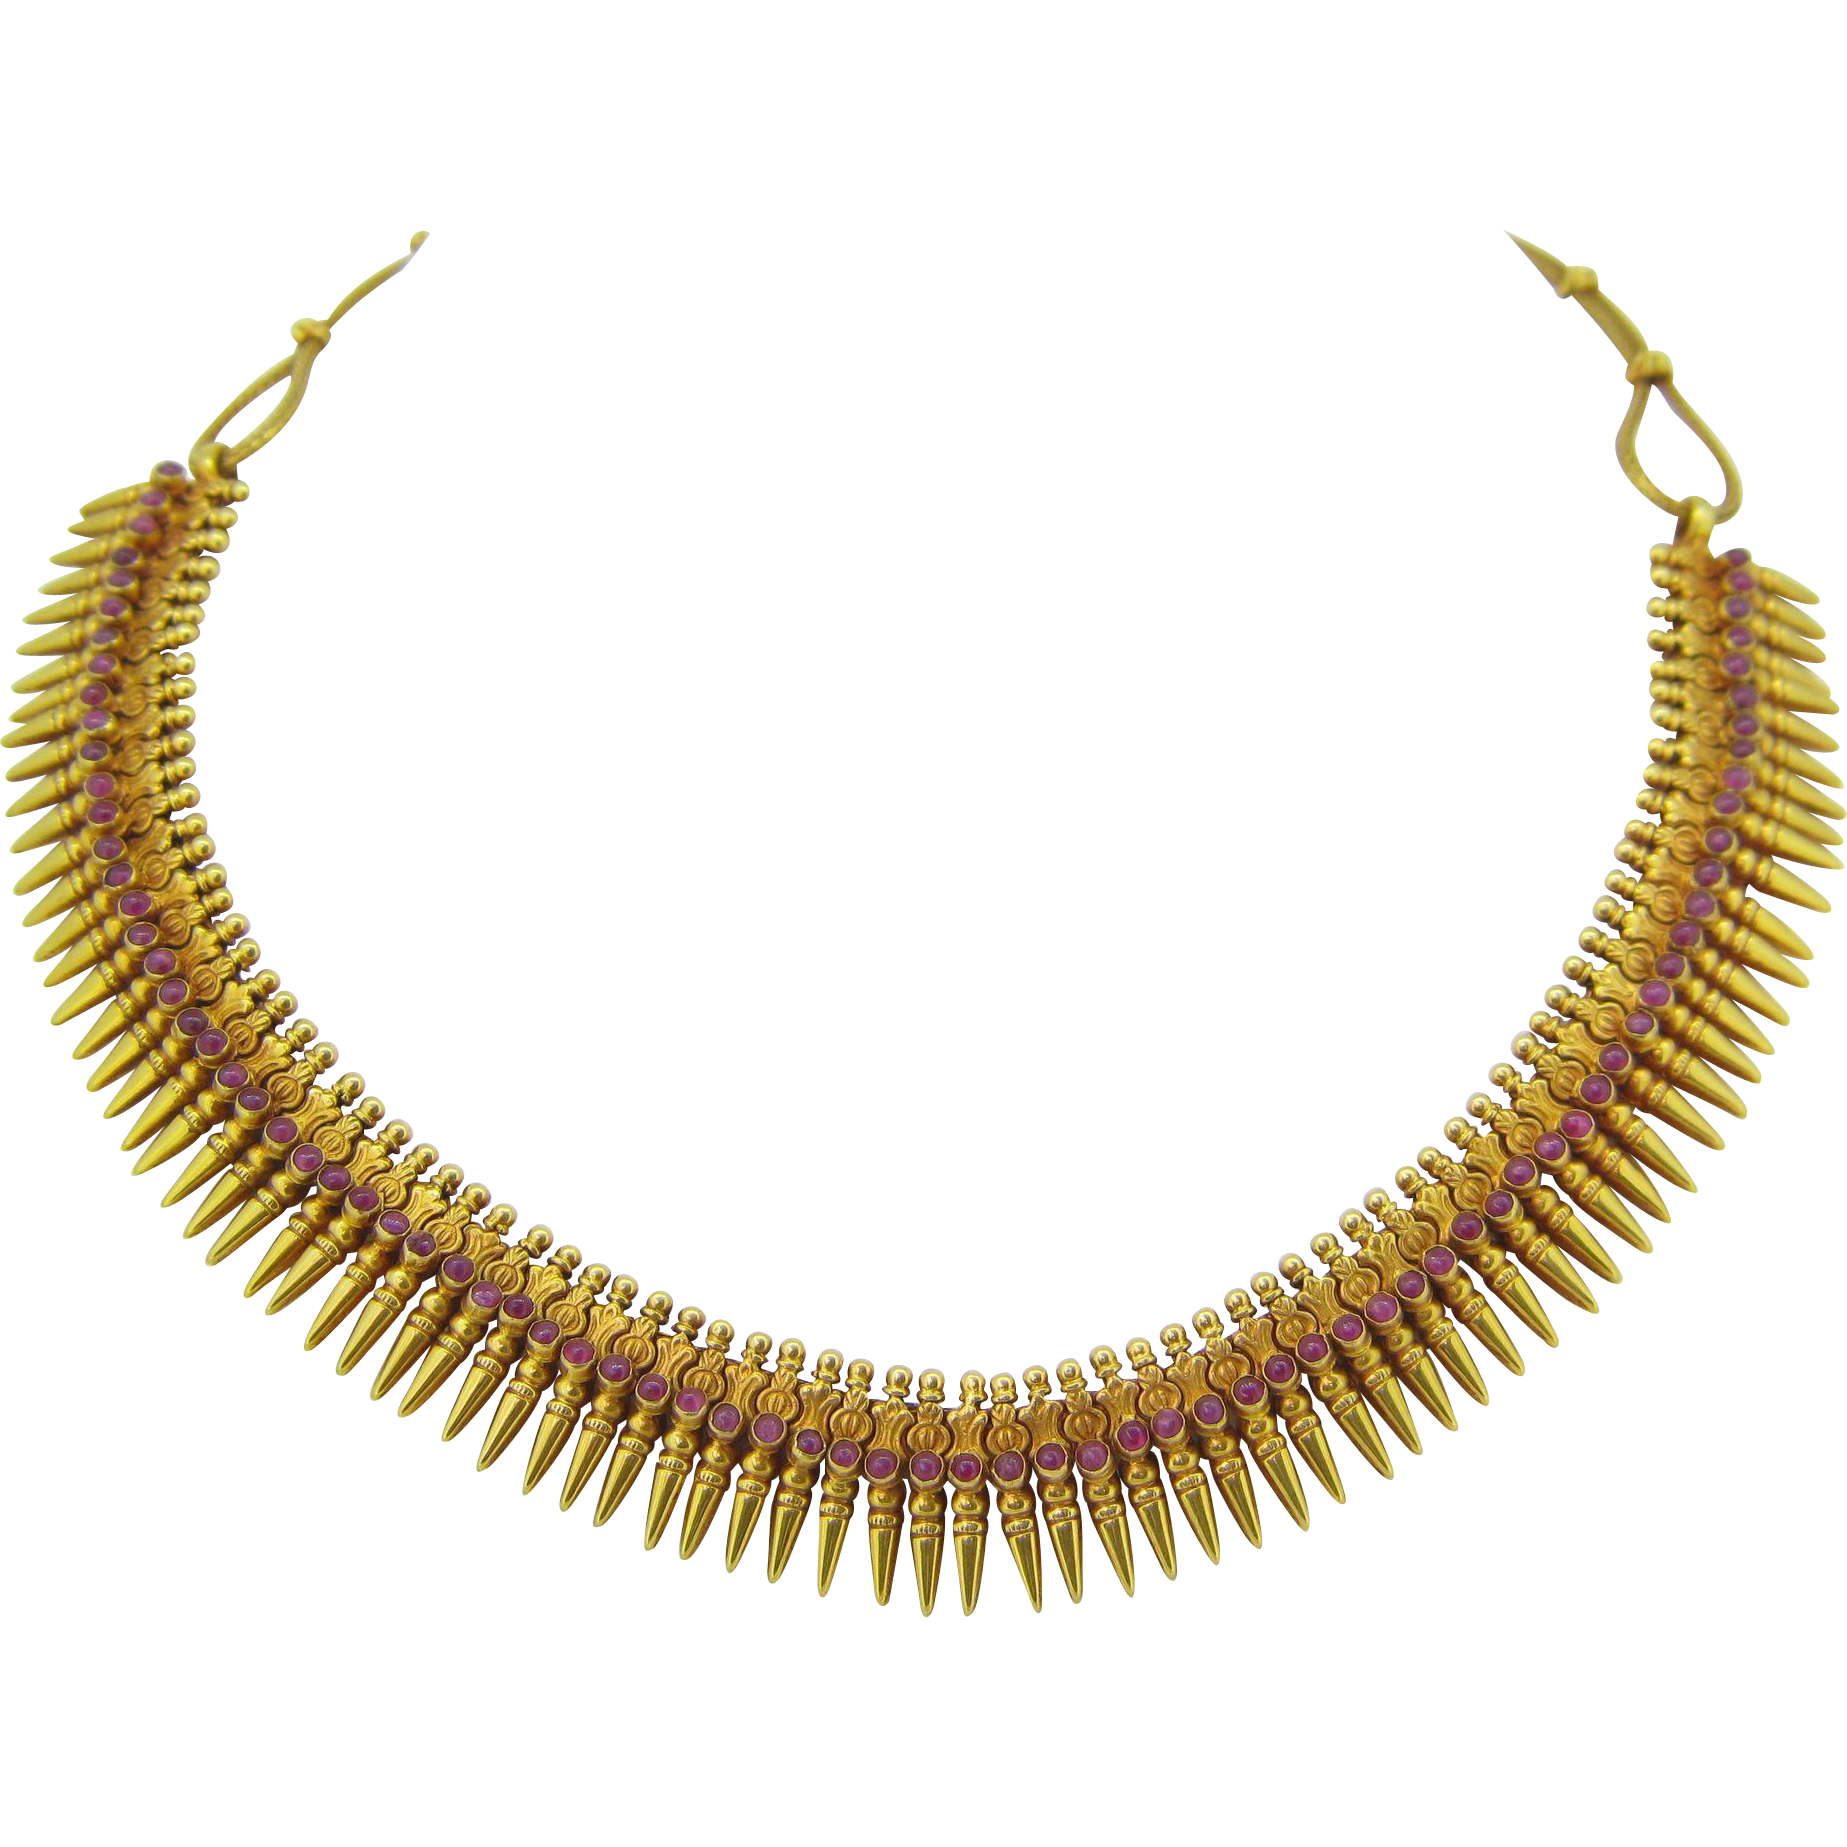 Antique Fringe collar - Etruscan Revival necklace - 18kt gold and rubies, circa 1860